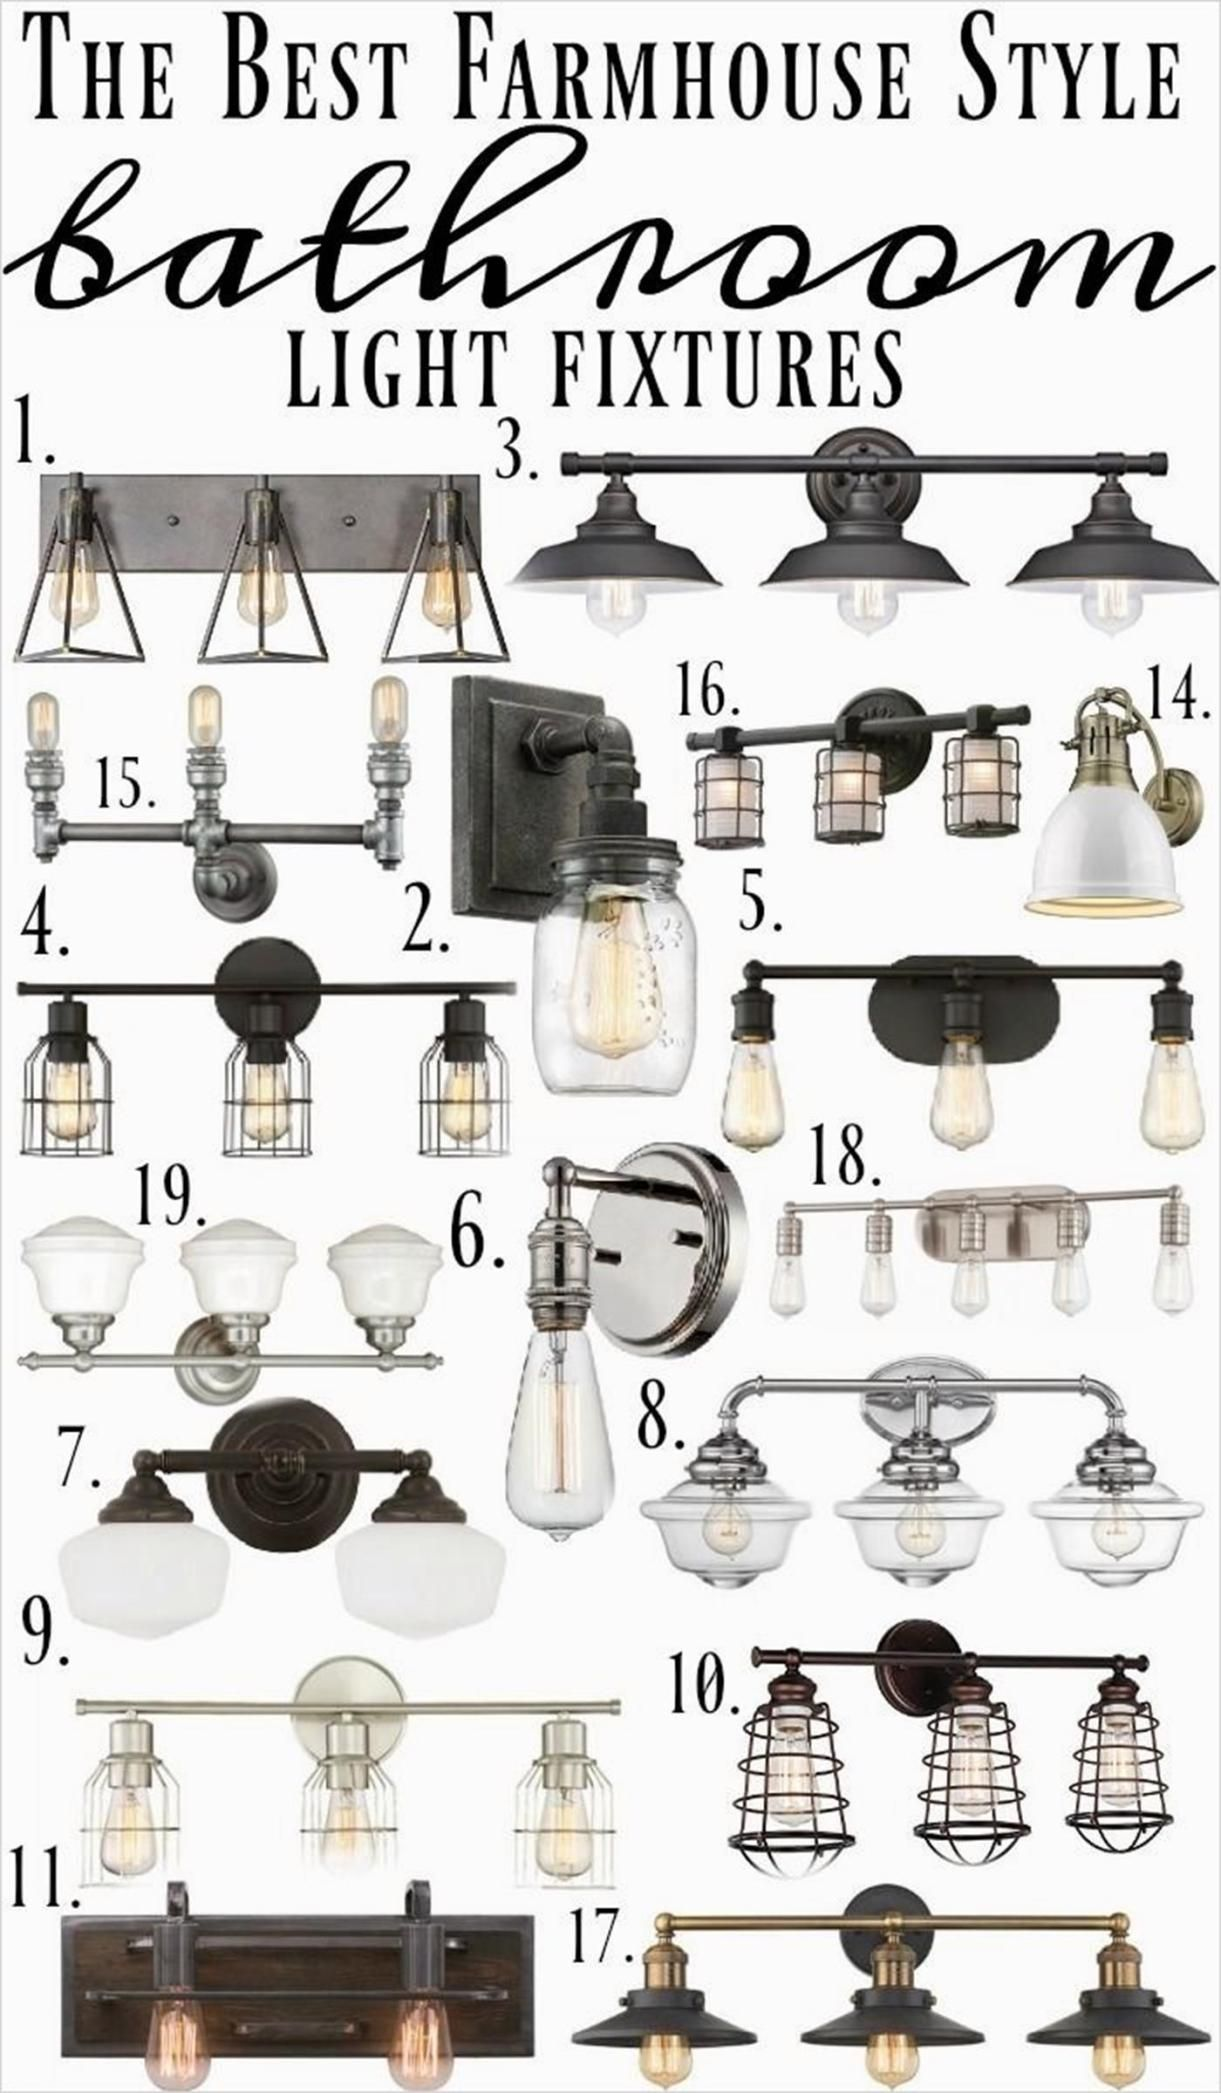 26 Inexpensive Farmhouse Bathroom Lighting Ideas You Ll Love Homeandcraft Bathroom Farmhouse Style Farmhouse Light Fixtures Bathroom Light Fixtures